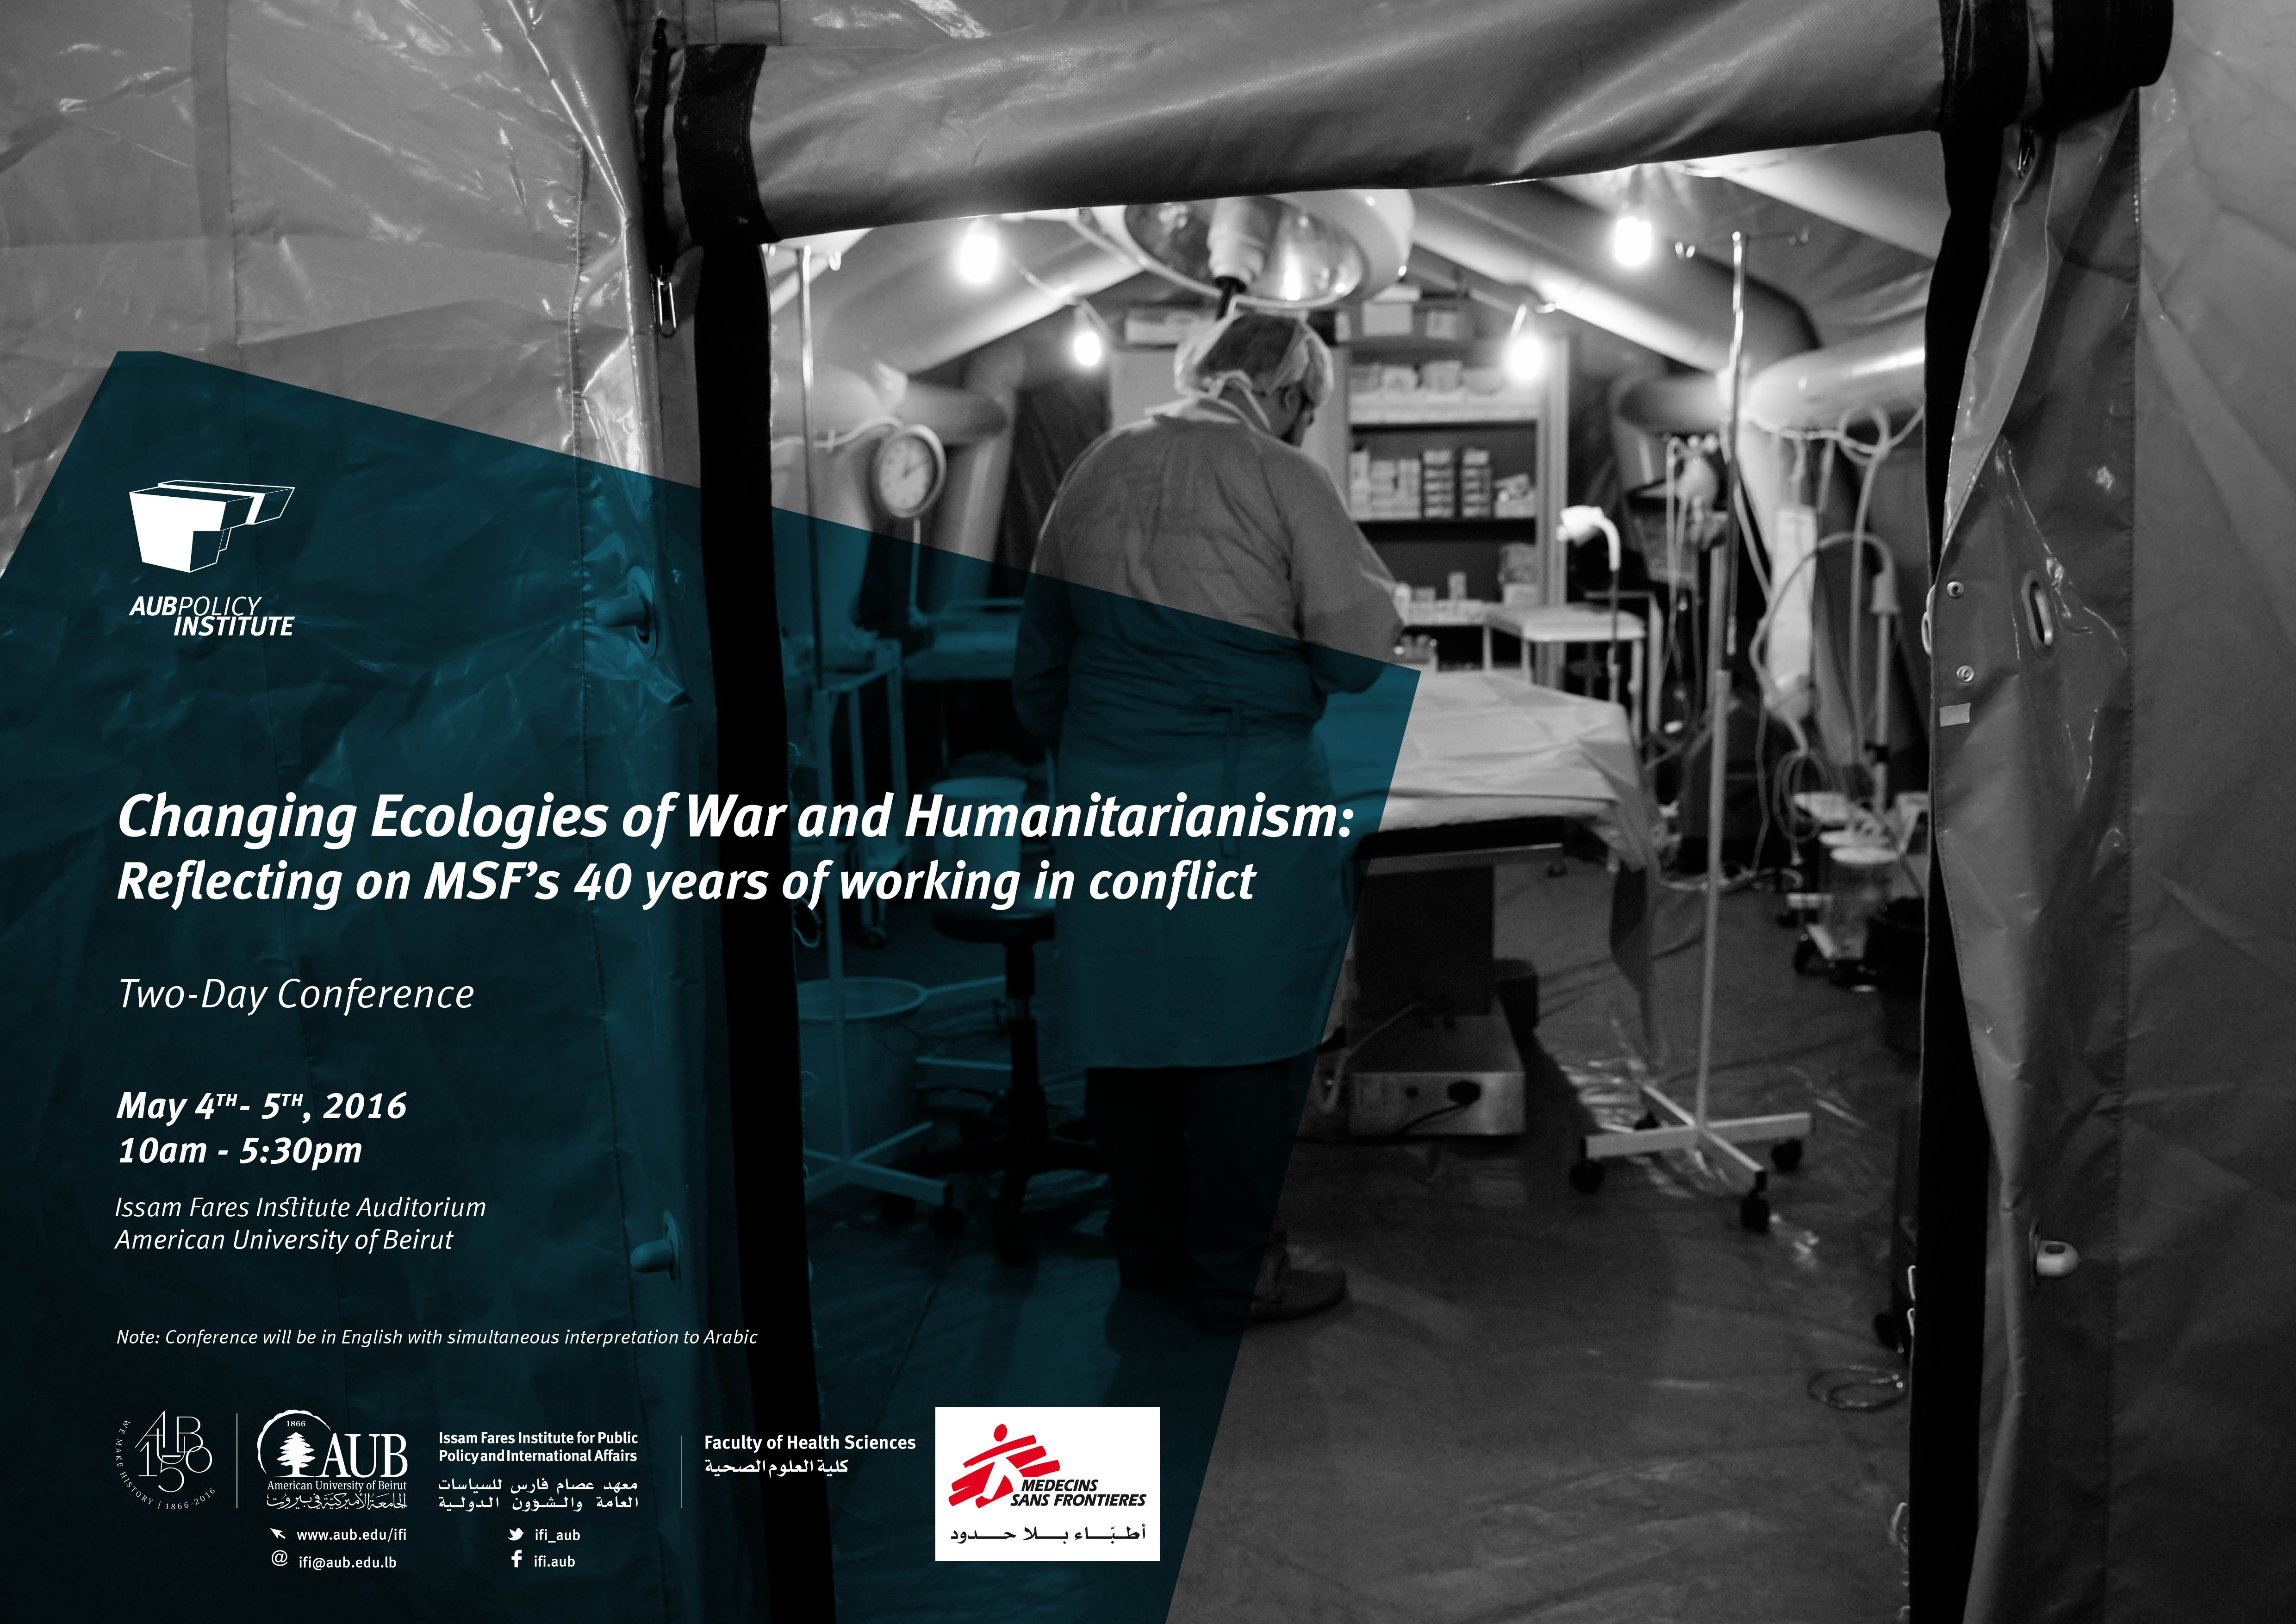 Changing Ecologies Of War And Humanitarianism: Reflecting On Msf's